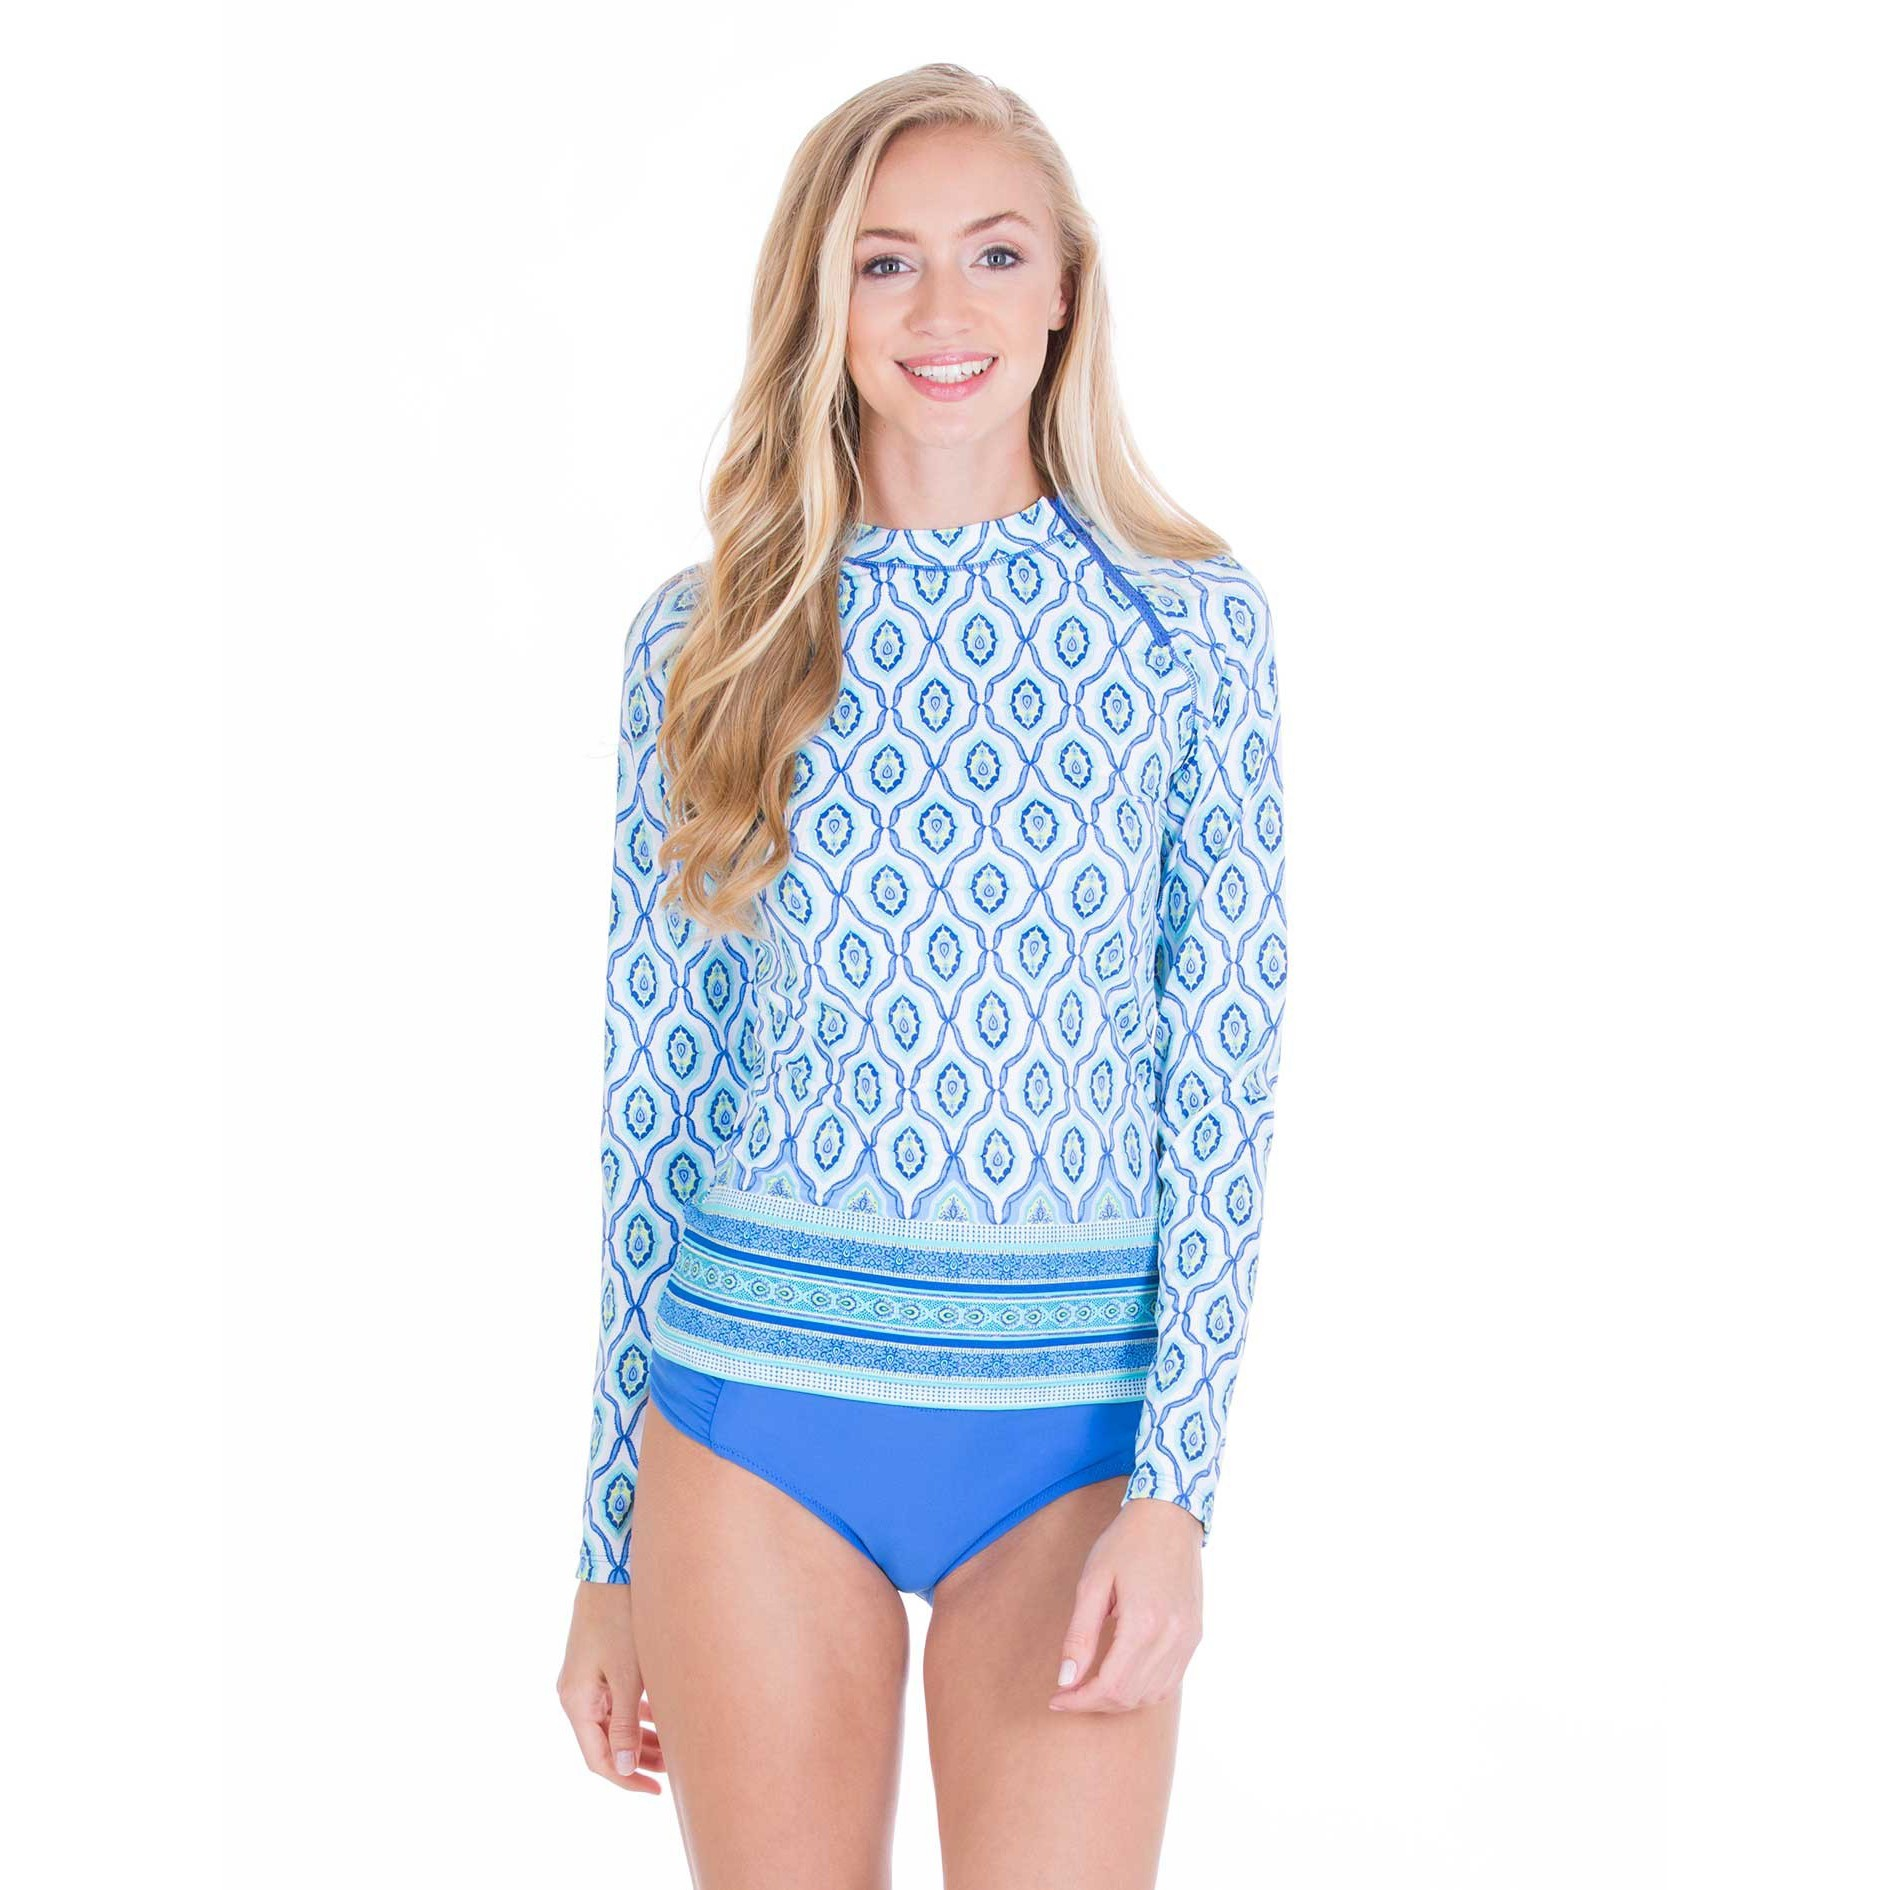 Cabana Life Bora Bora Zipper +50 UPF Long-Sleeved Rashguard (Women's)